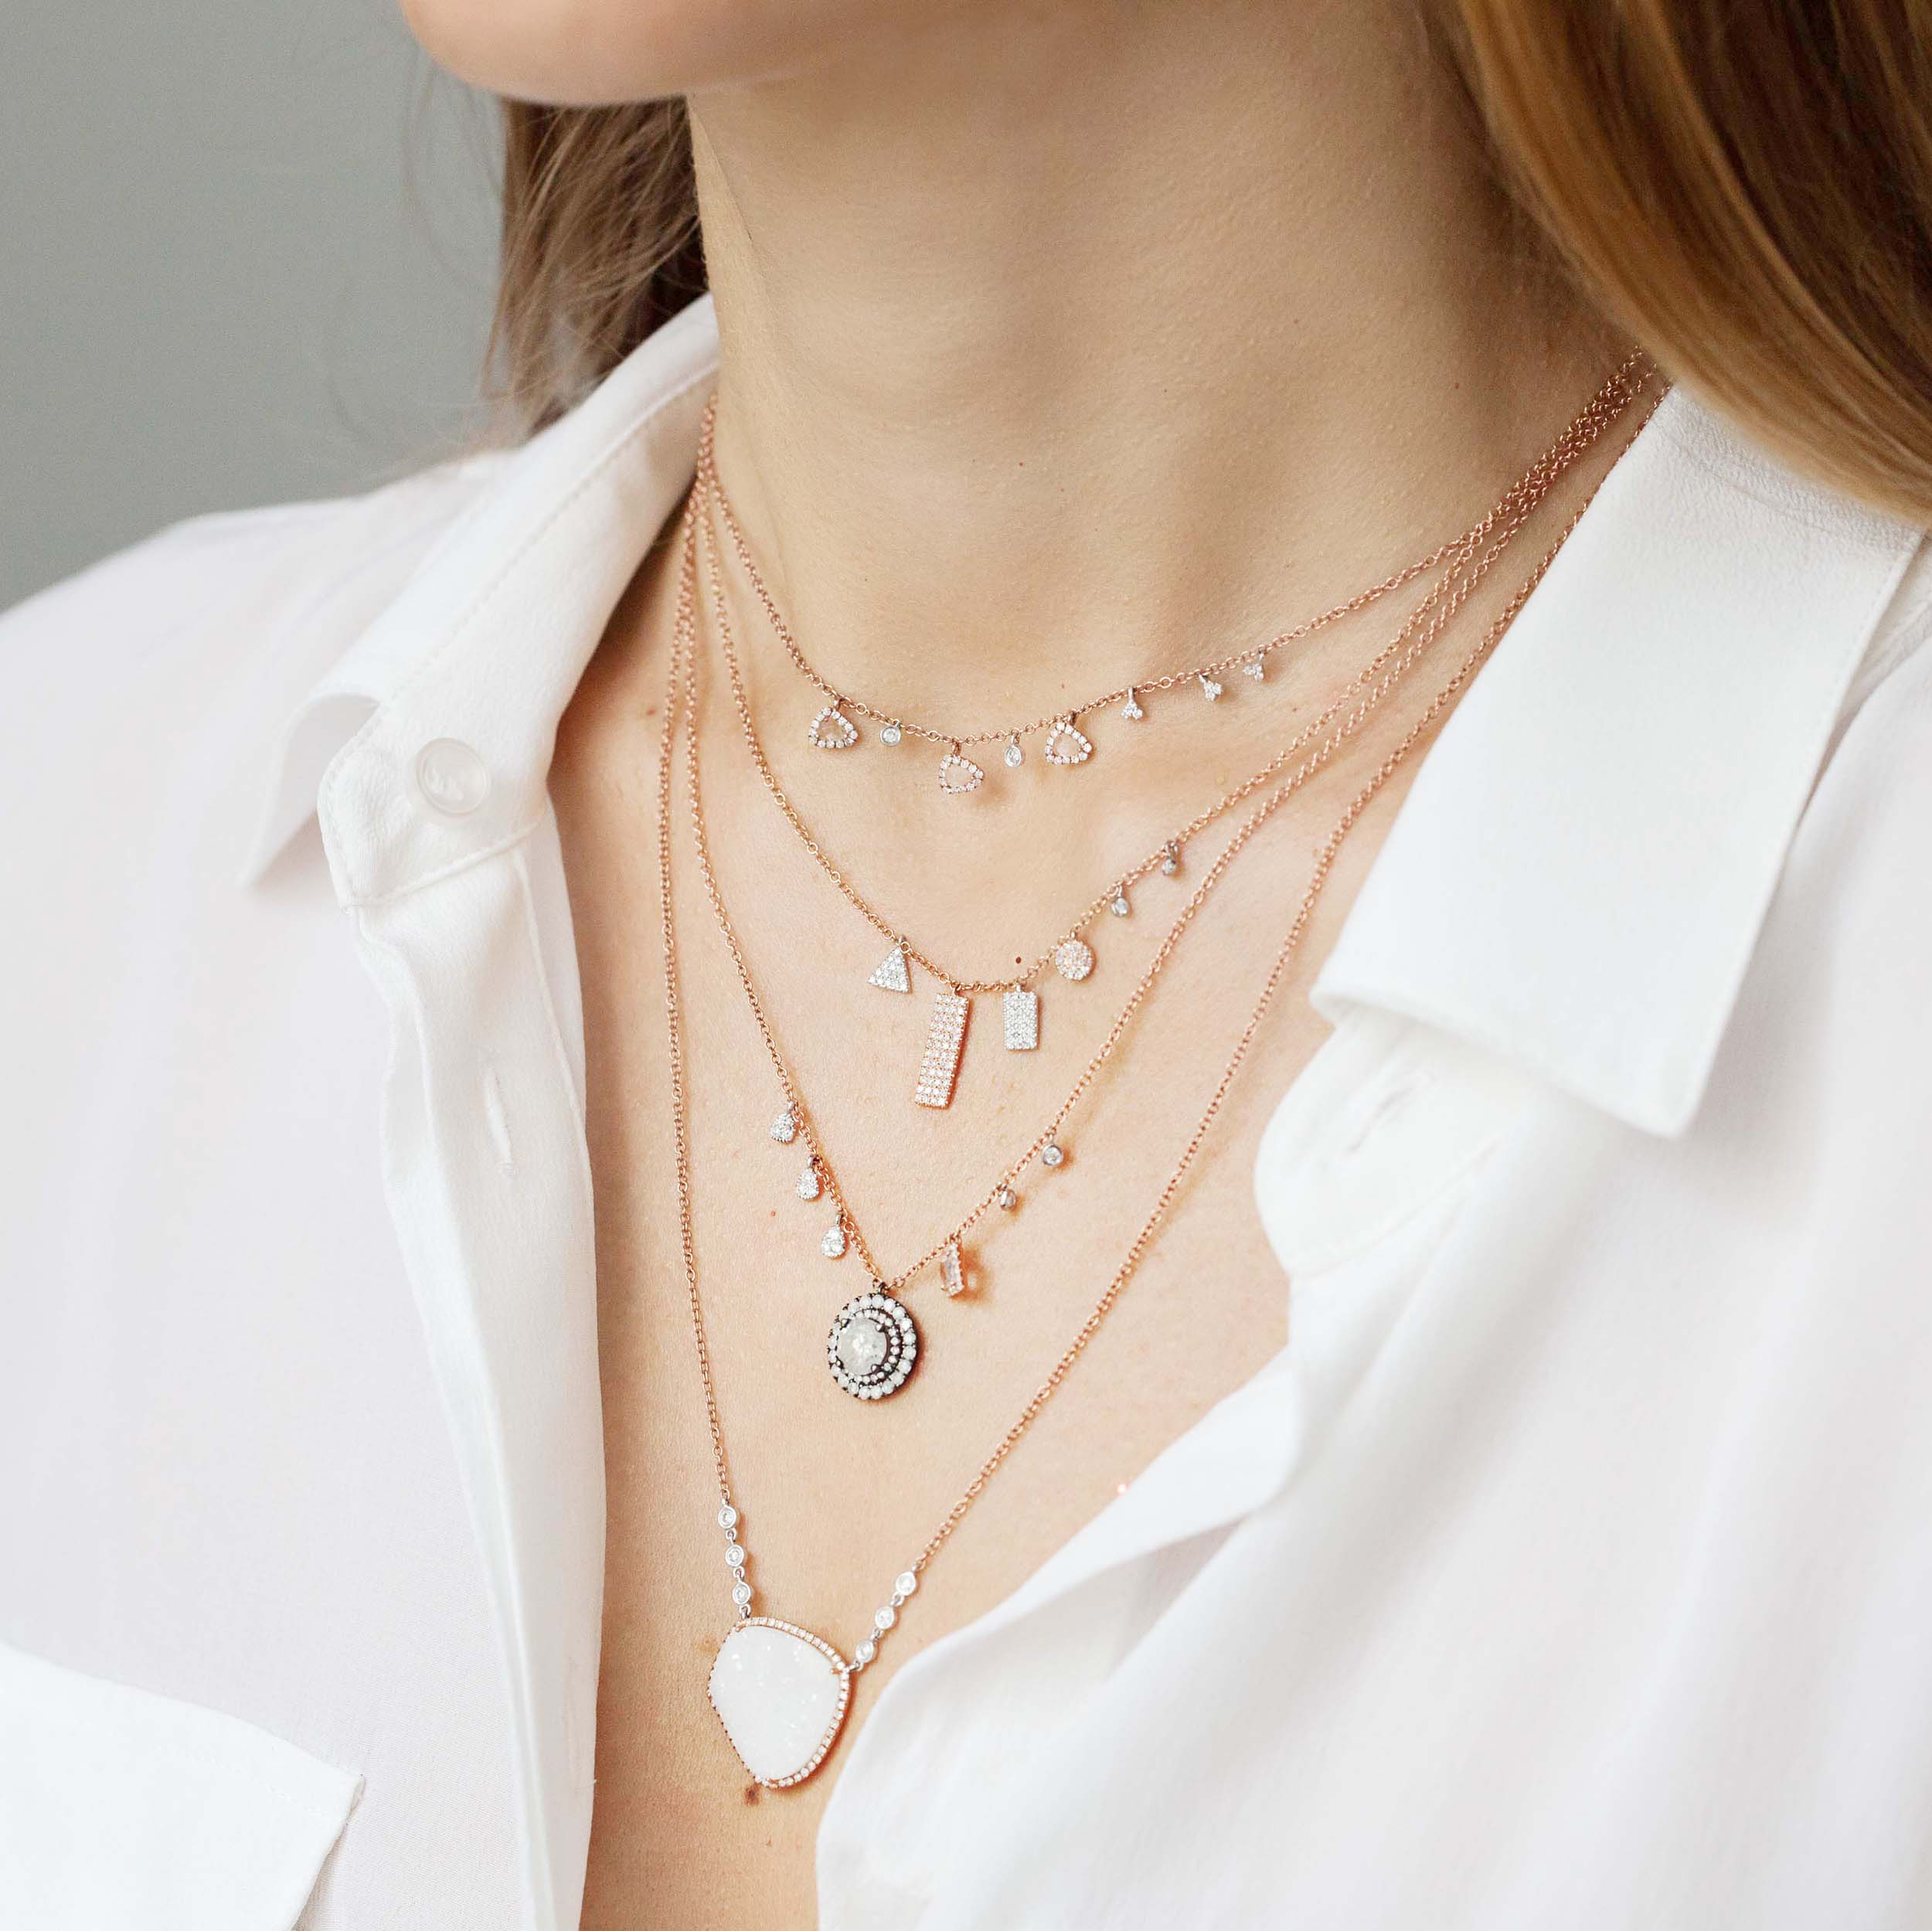 THE ART OF NECKLACE LAYERING